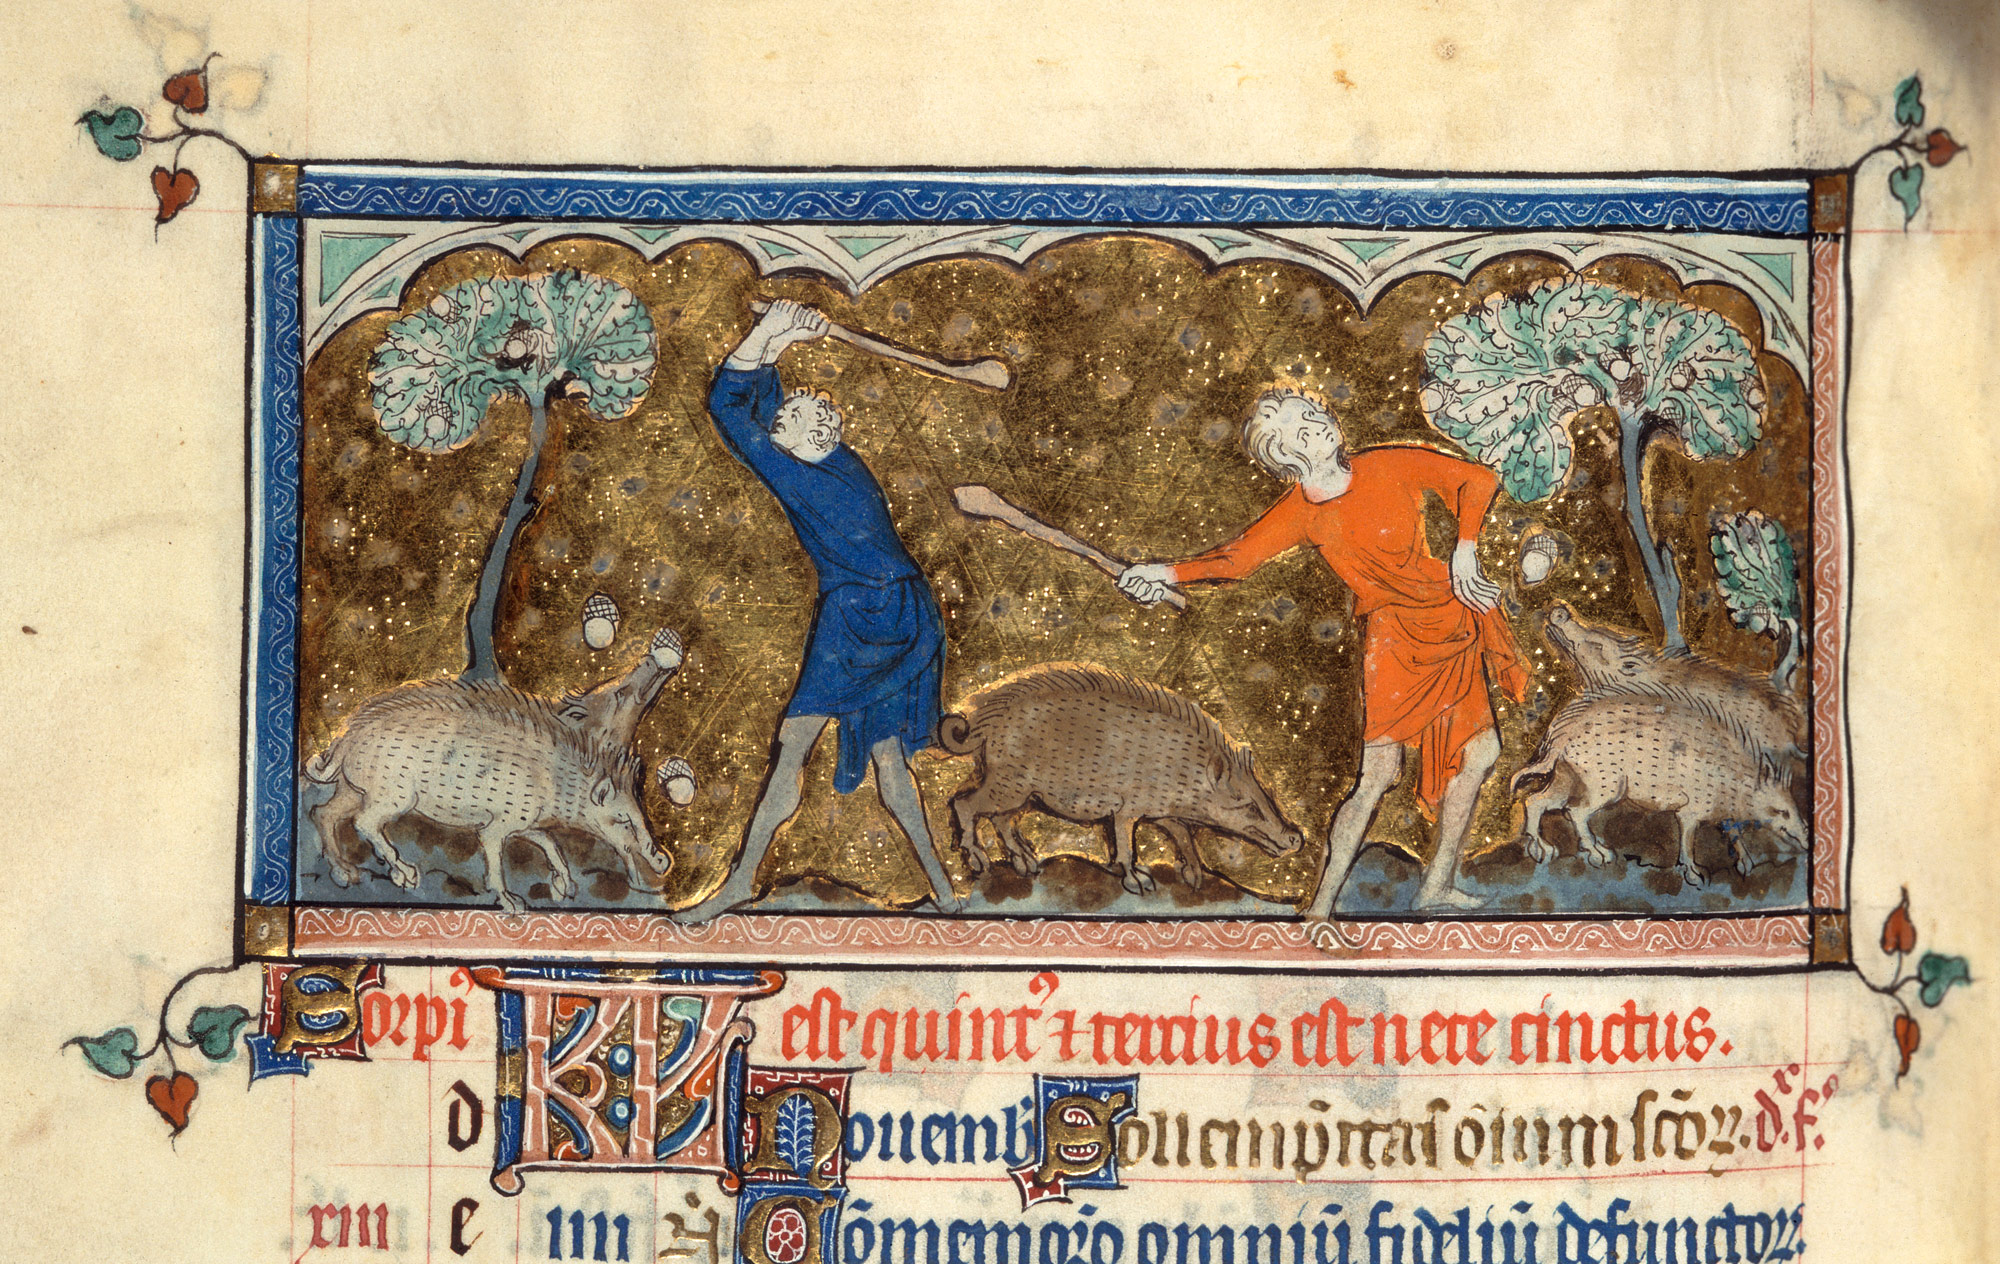 Harvesting acorn to feed swine